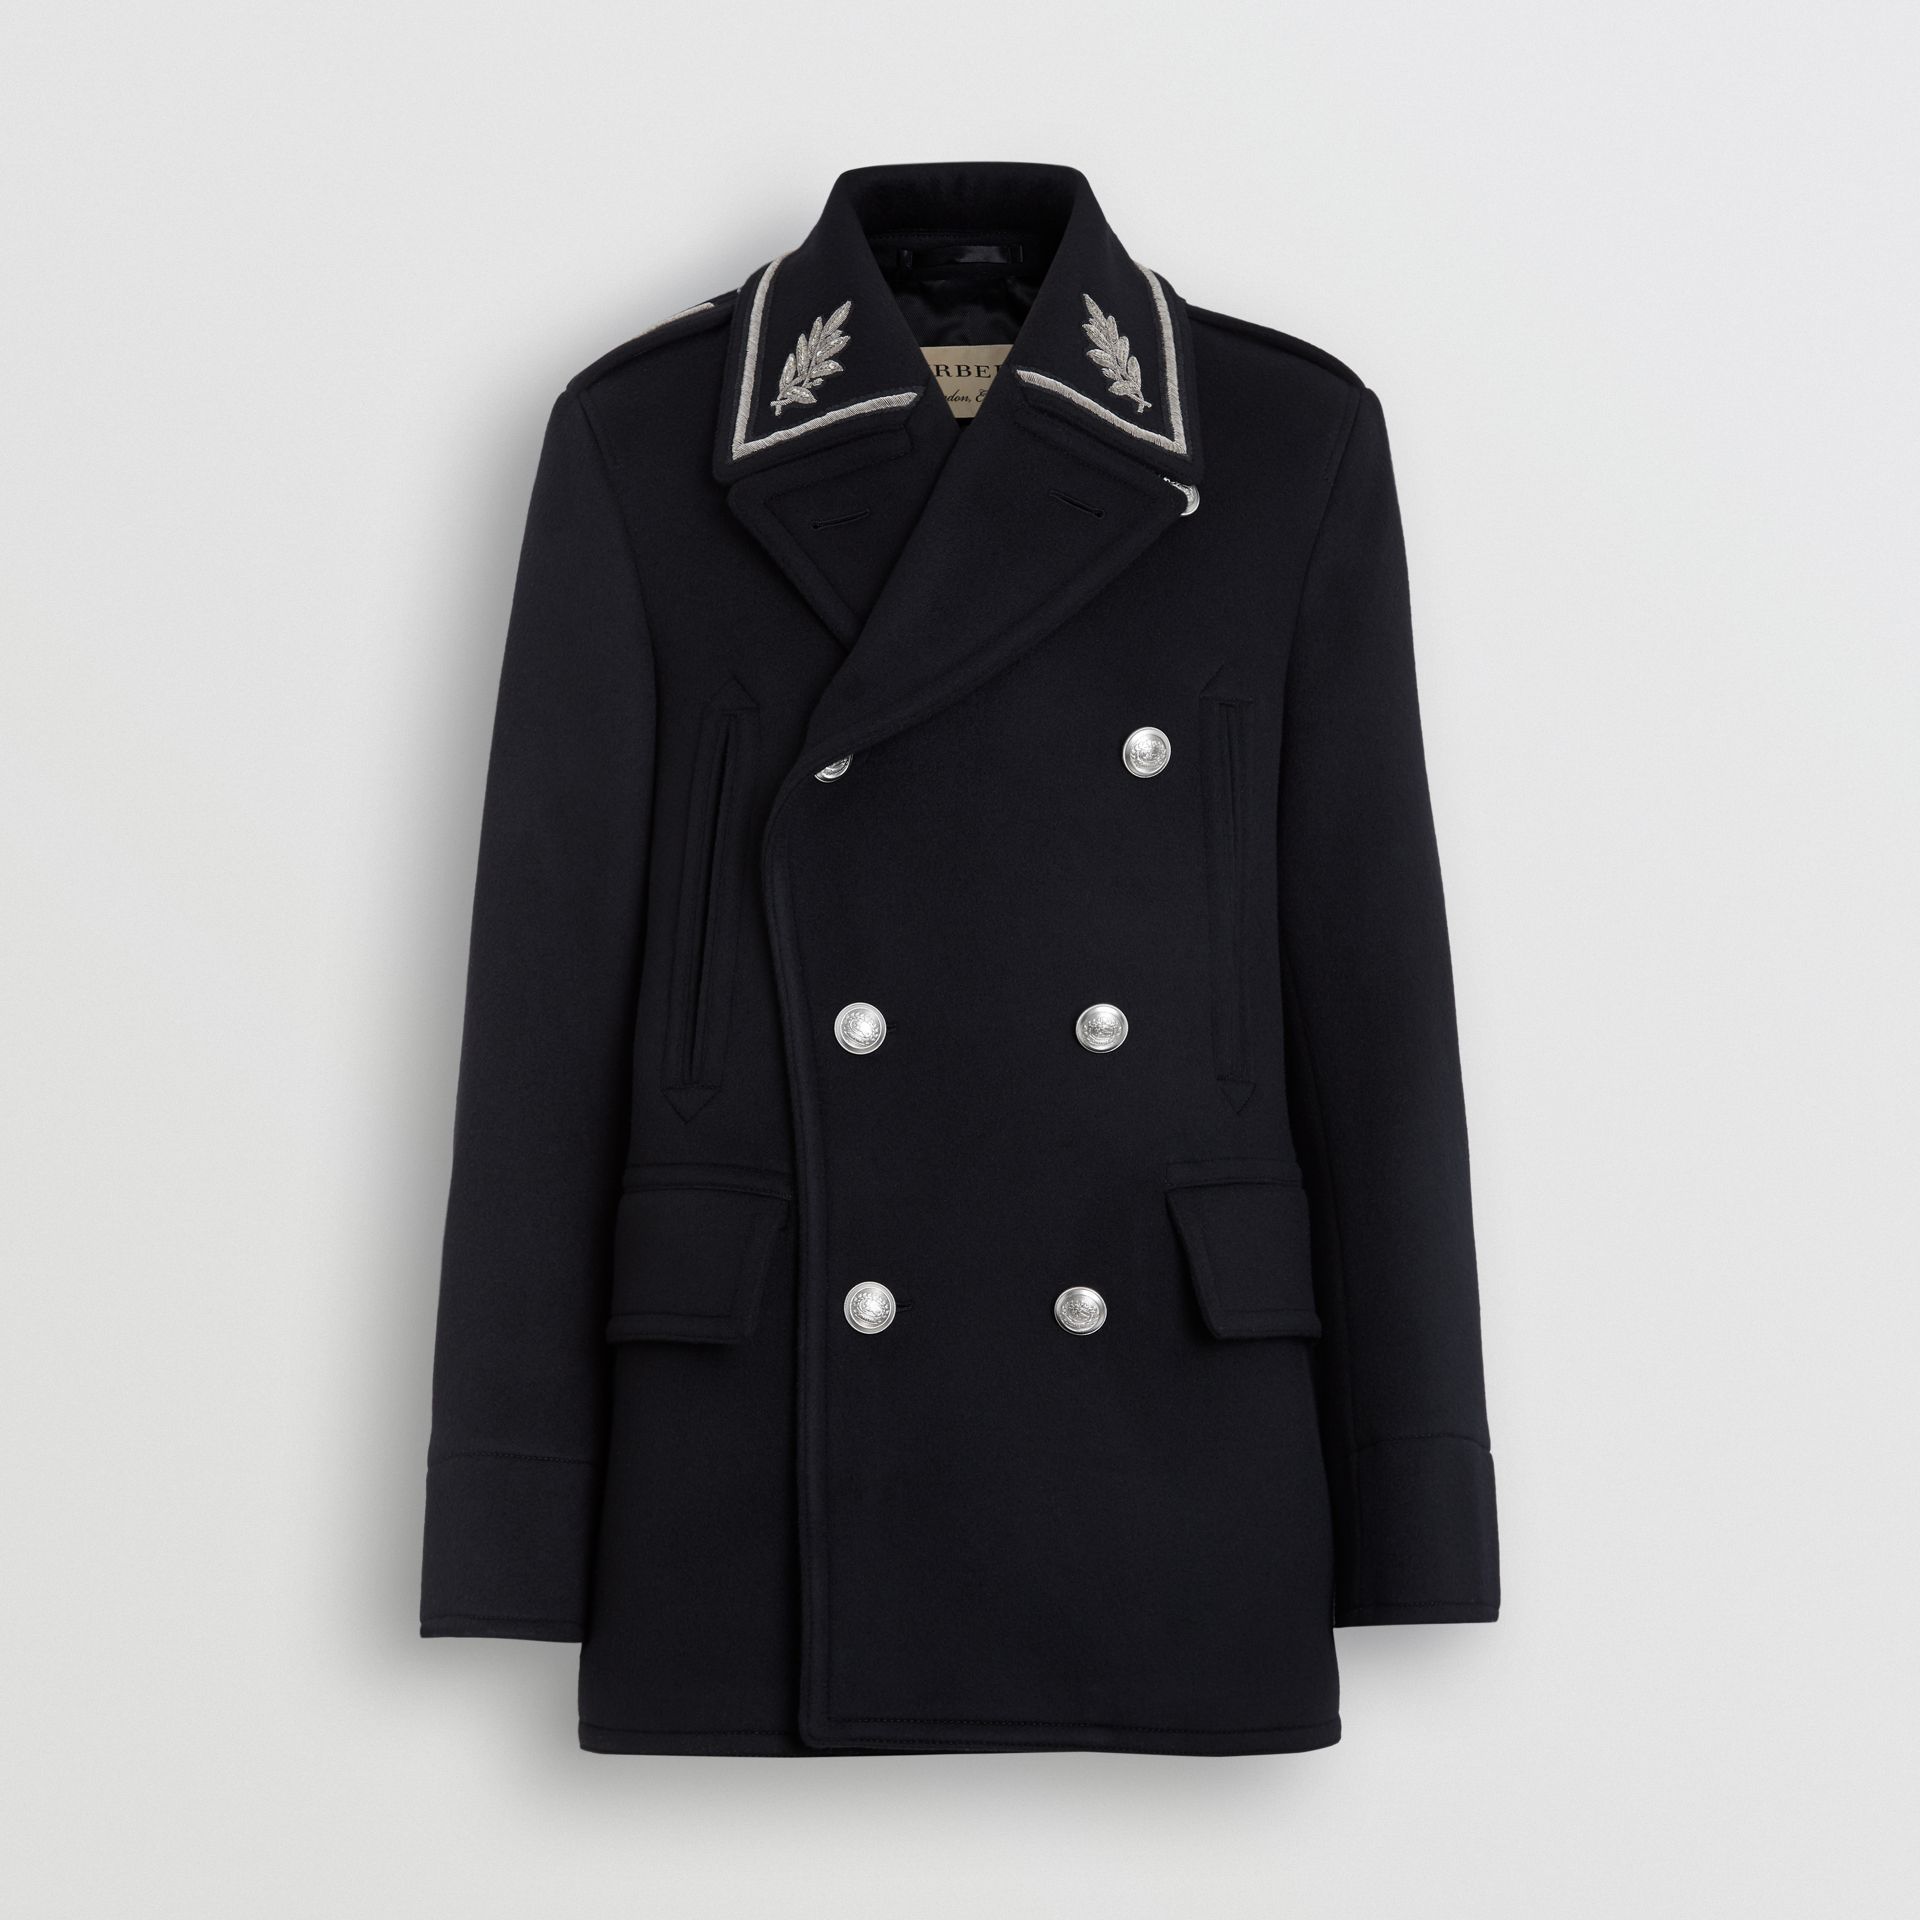 Bullion Wool Cashmere Pea Coat in Dark Navy - Men | Burberry Singapore - gallery image 3